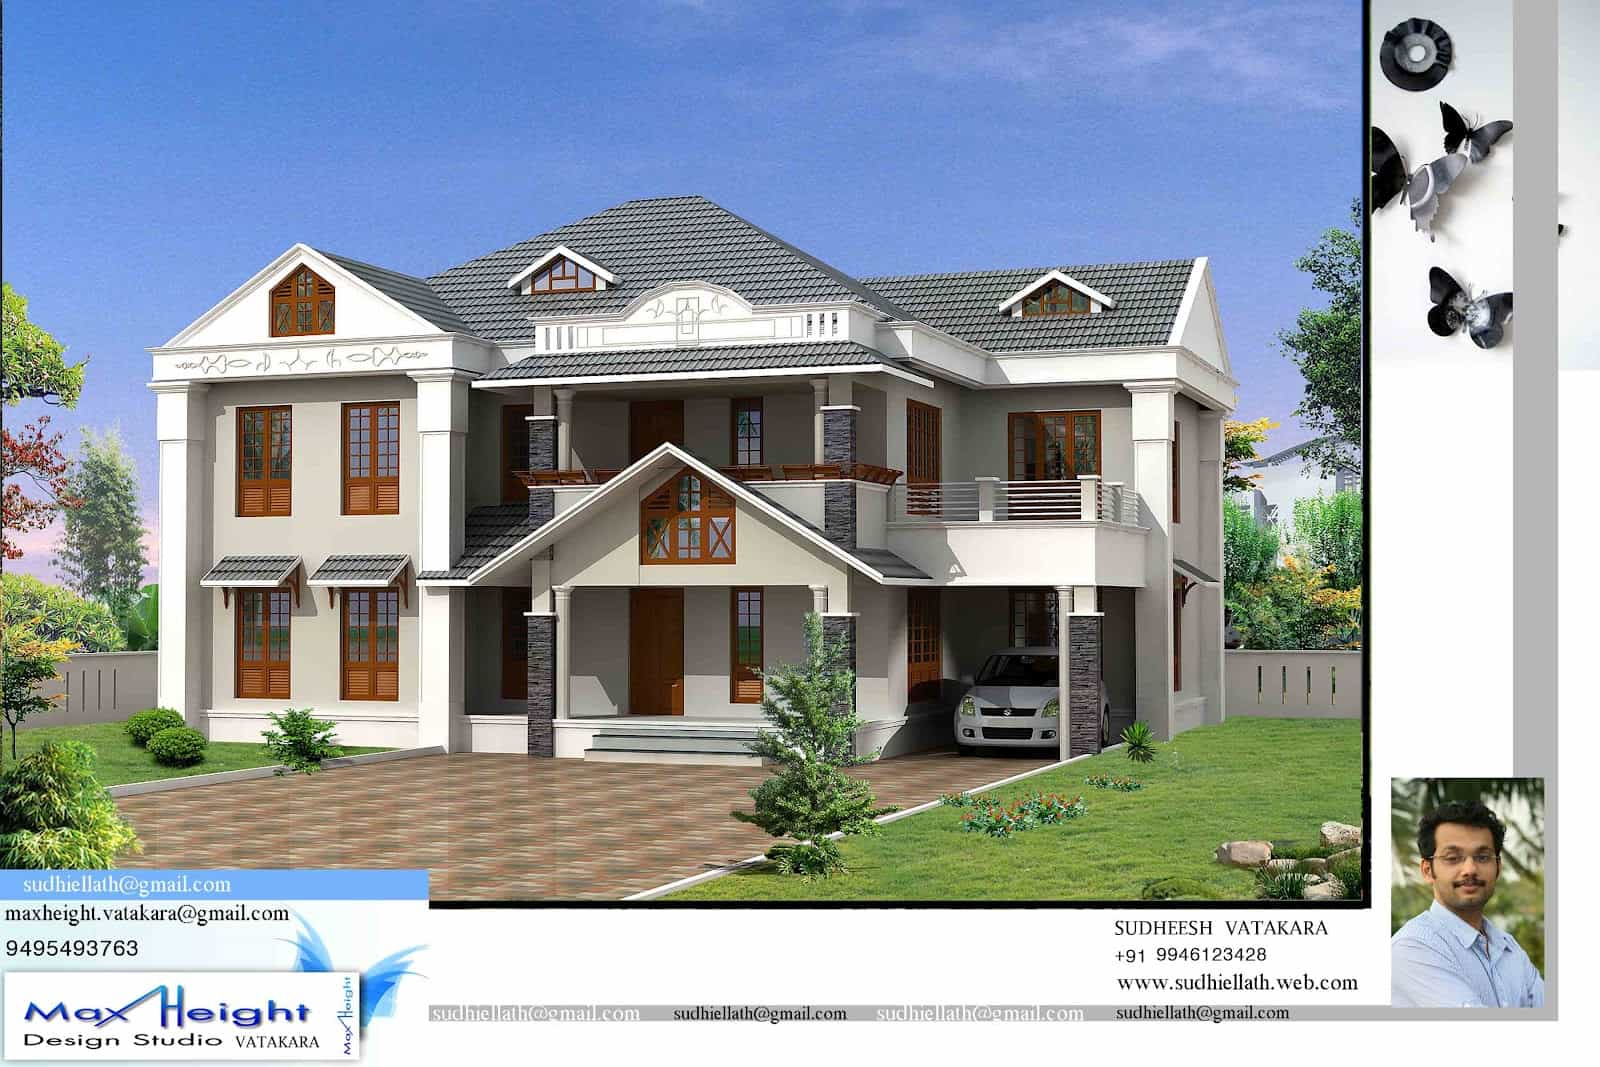 New model houses in kerala photos images for Model house design